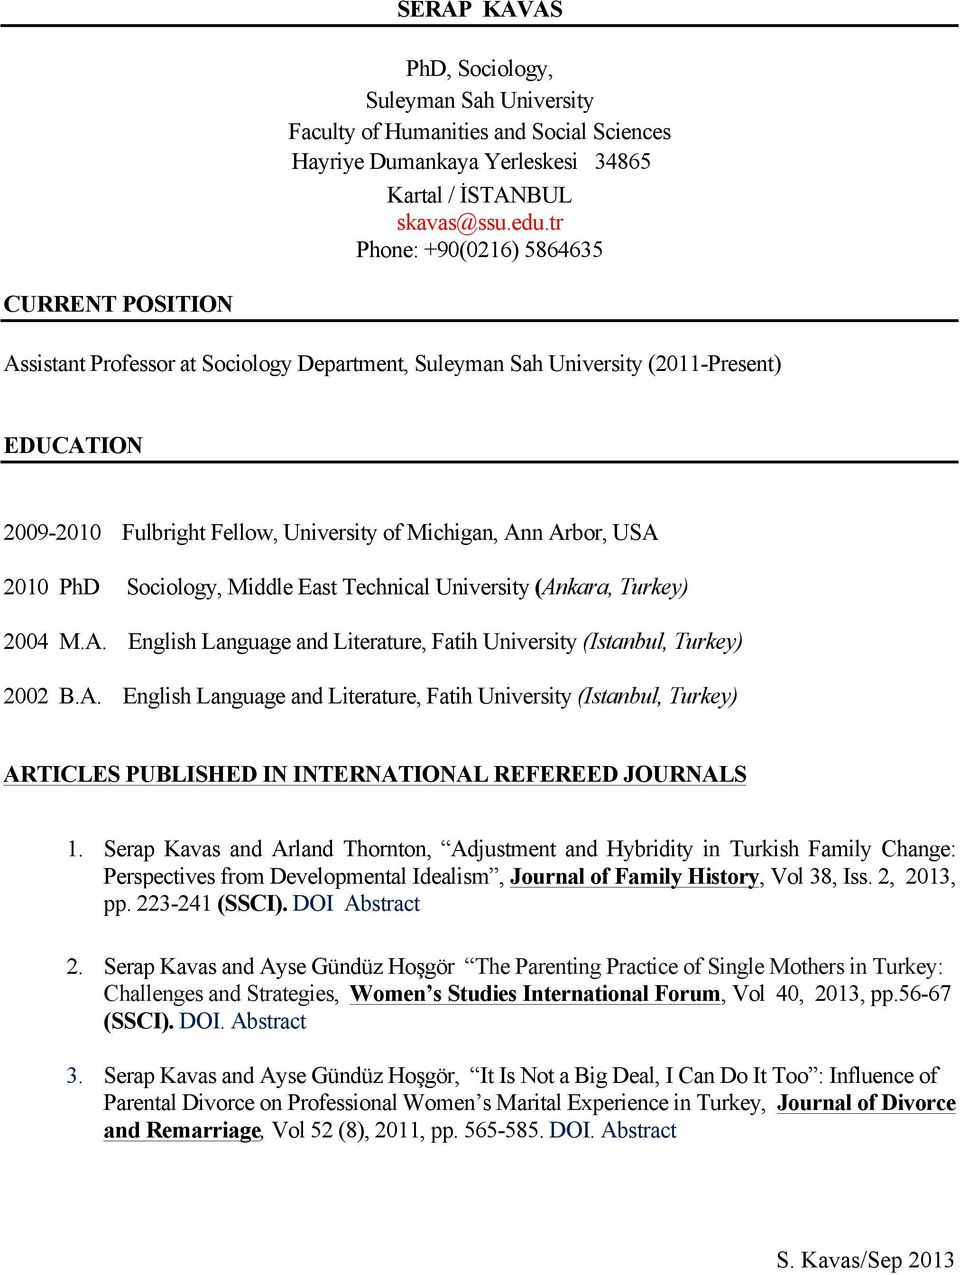 Arbor, USA 2010 PhD Sociology, Middle East Technical University (Ankara, Turkey) 2004 M.A. English Language and Literature, Fatih University (Istanbul, Turkey) 2002 B.A. English Language and Literature, Fatih University (Istanbul, Turkey) ARTICLES PUBLISHED IN INTERNATIONAL REFEREED JOURNALS 1.